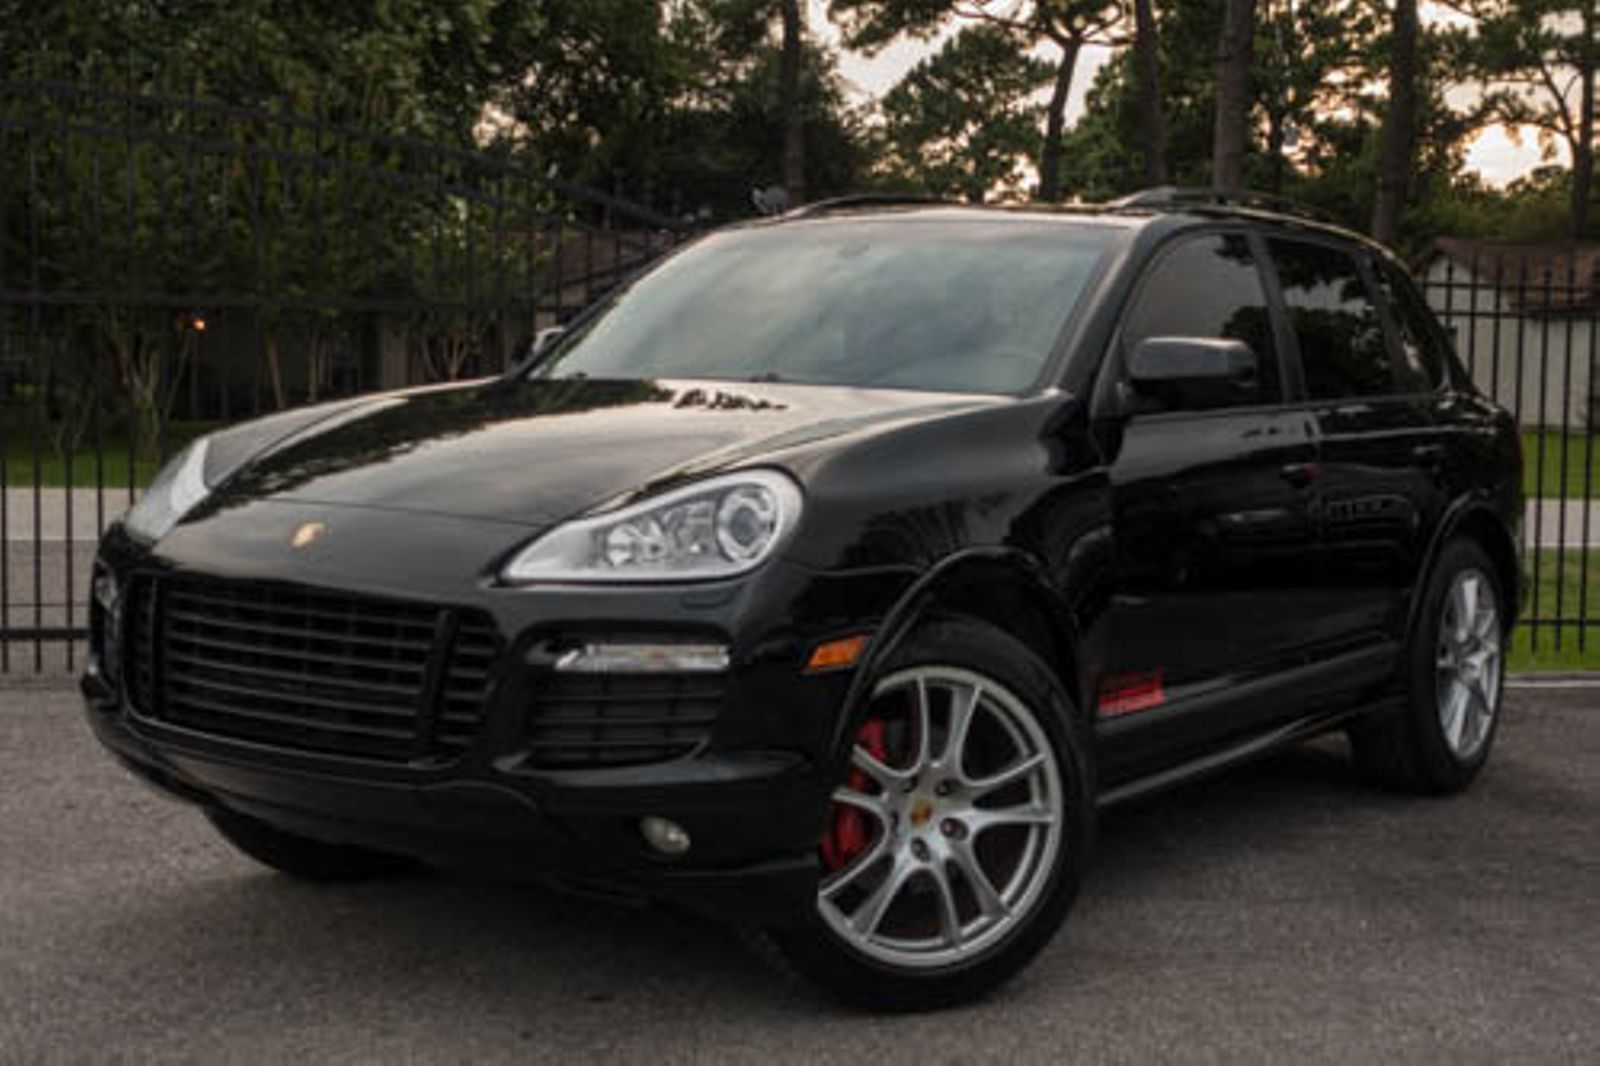 Used Porsche Cayenne Gts 2009 Black Gts 2018 2019 Is In Stock And For Sale 24carshop Com